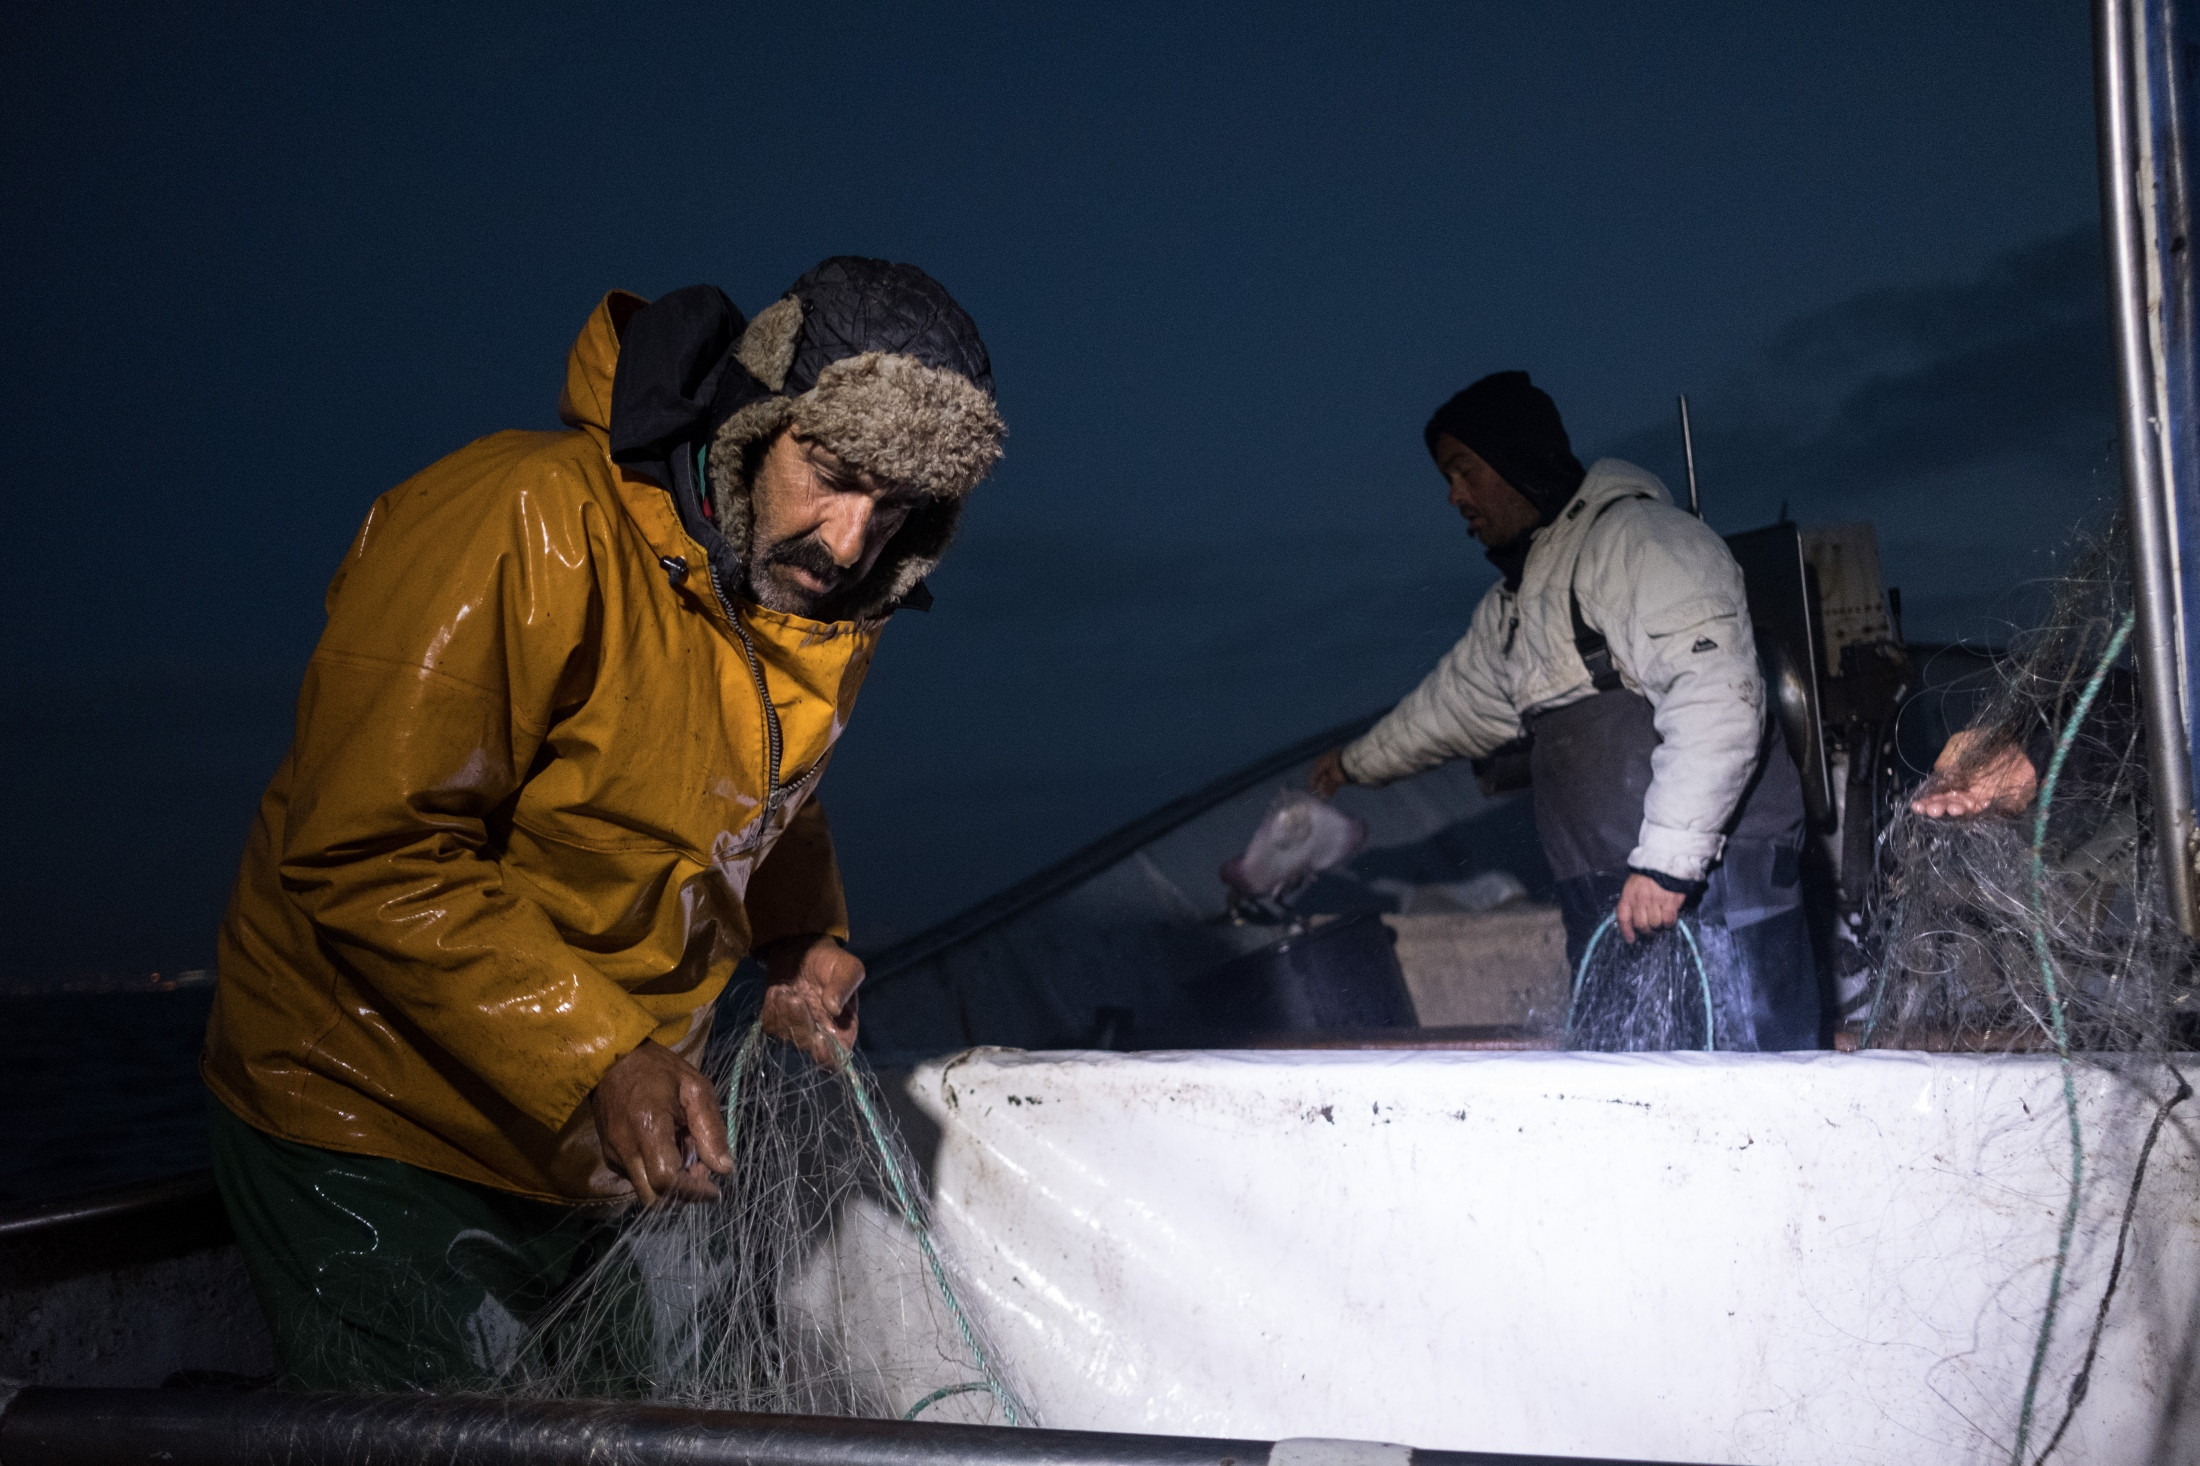 "Paulo and Pedro ""Matuta"" collecting cuttlefish from the nets. It is the first time in 10 days that they go fishing. Leaving shore at 6 a.m. and coming back after 10 hours."